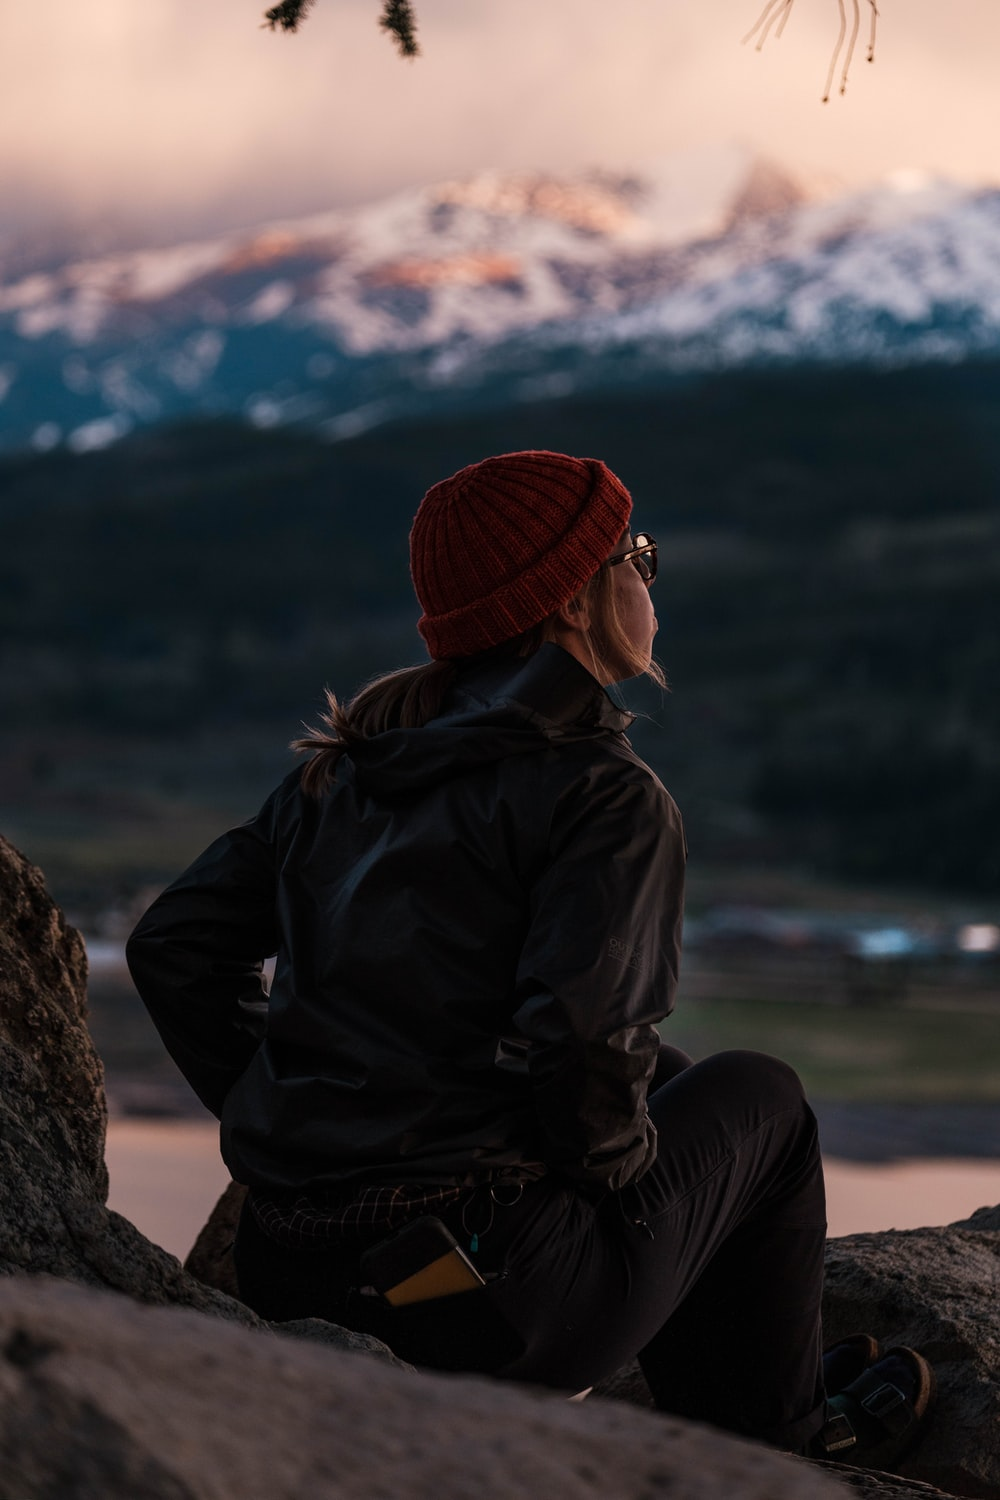 person in black jacket and red knit cap sitting on brown rock during daytime